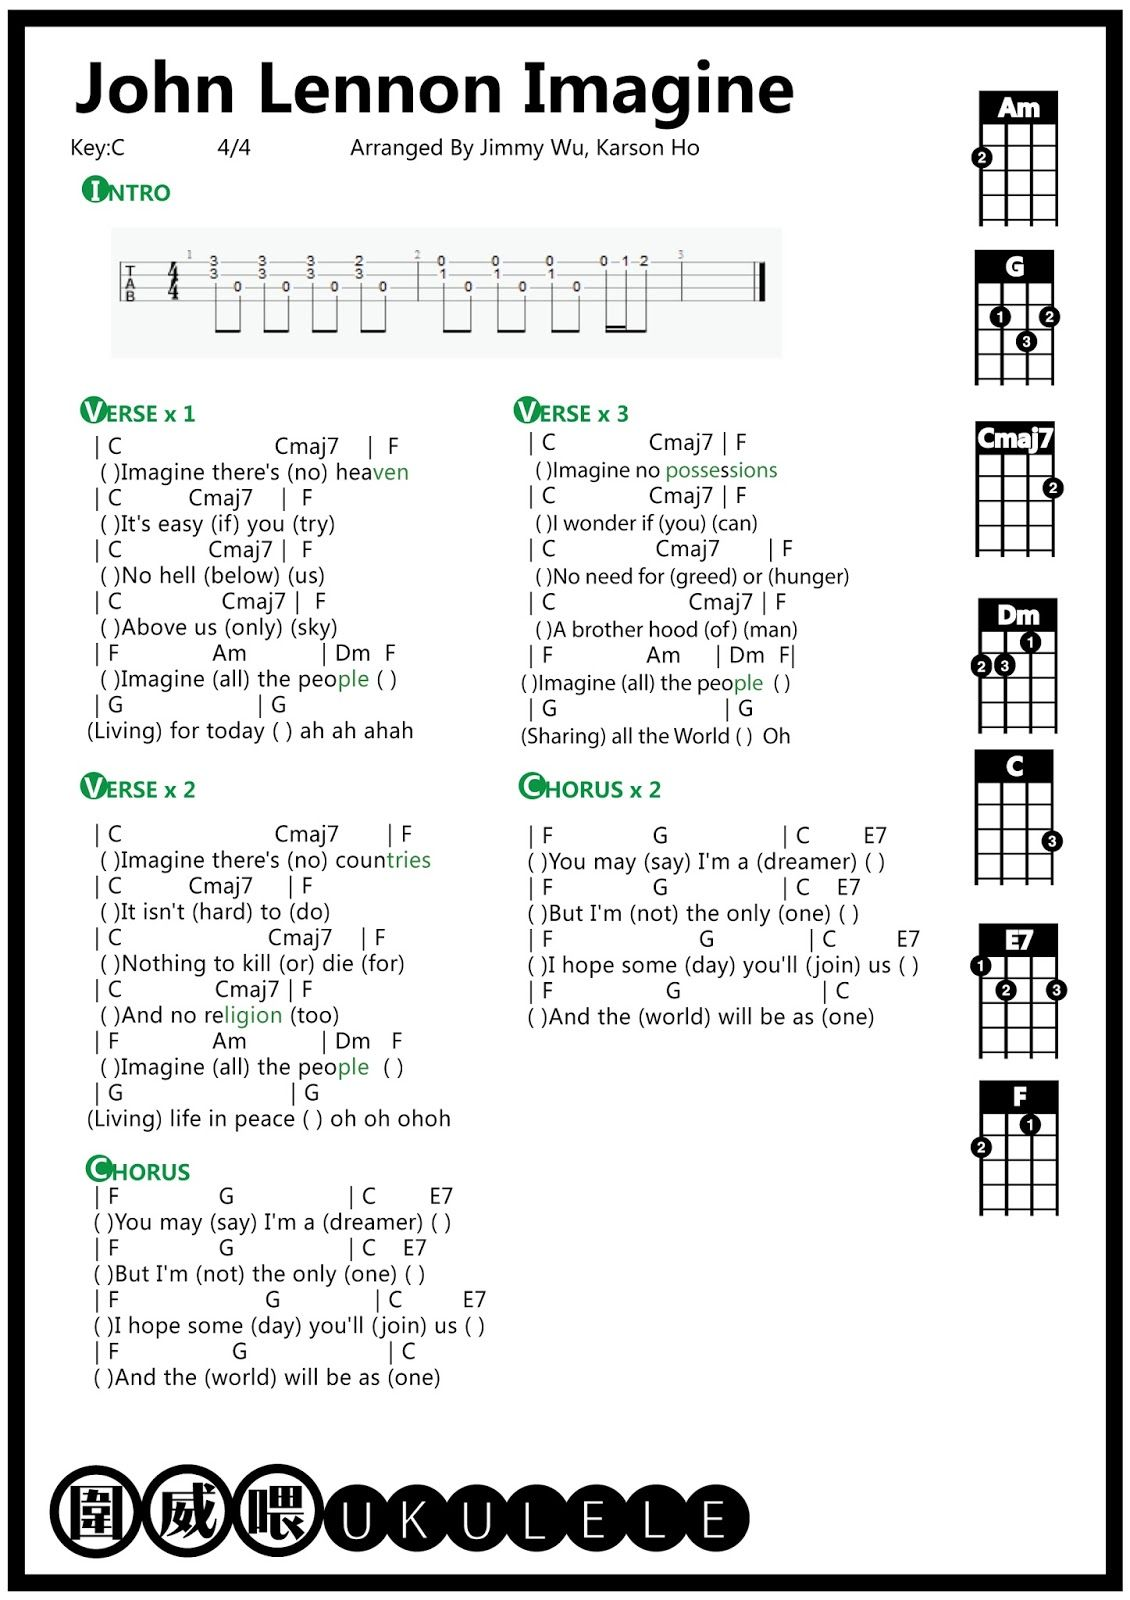 圍威喂 ukulele: John Lennon Imagine [ukulele tab] | Guitars ...